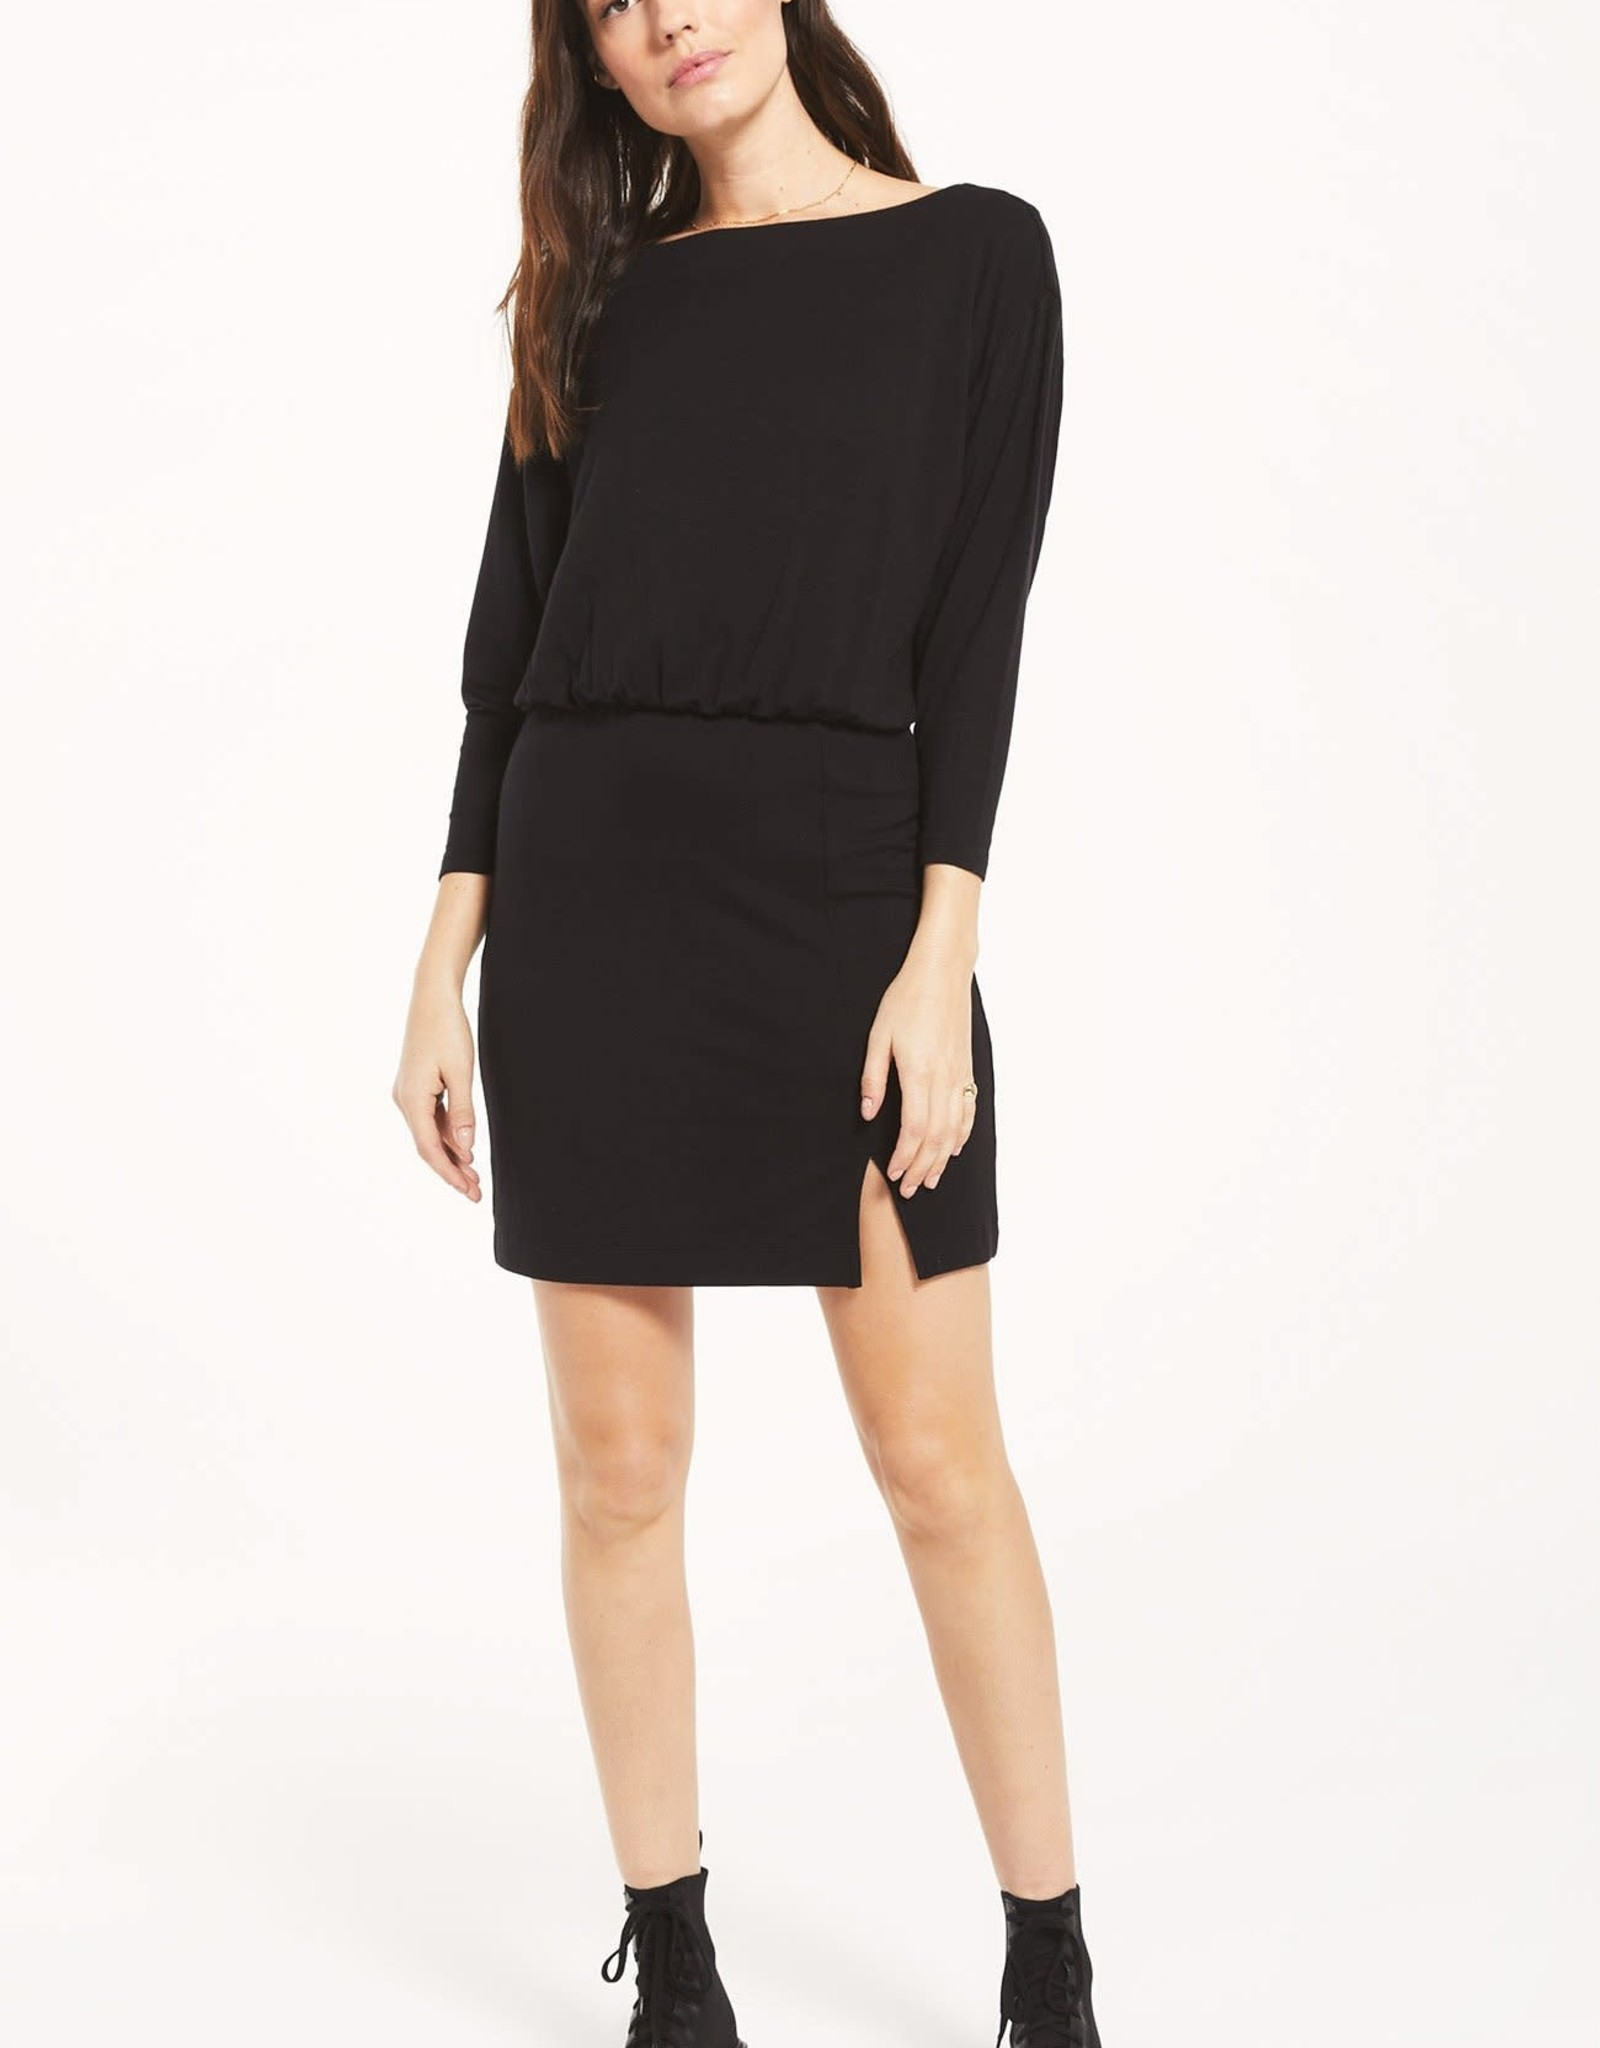 Z Supply Stacia Premium Dress Black